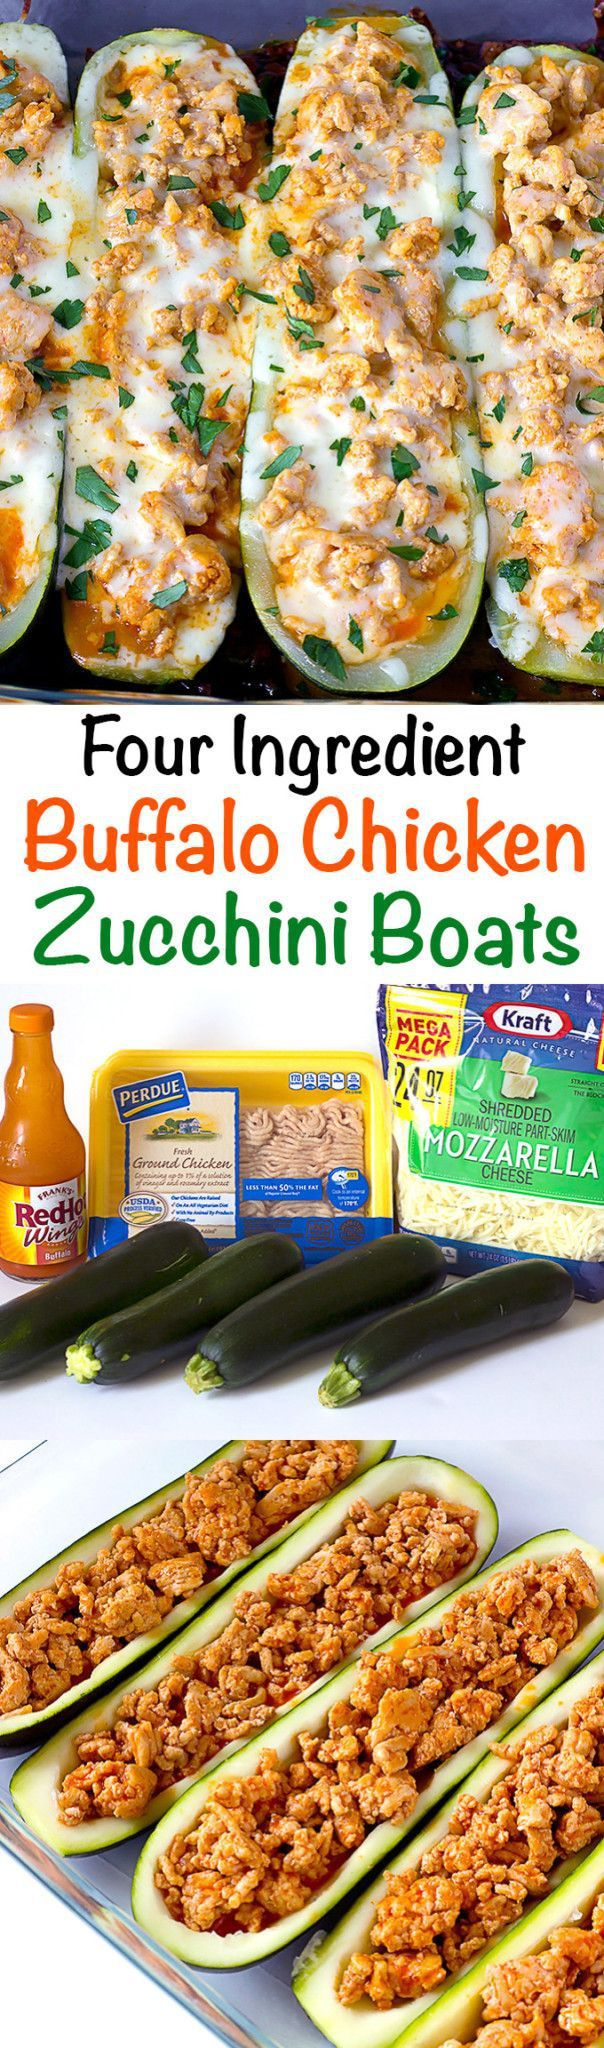 Buffalo Chicken Zucchini Boats simple stuffed zucchini that only calls for four ingredients!